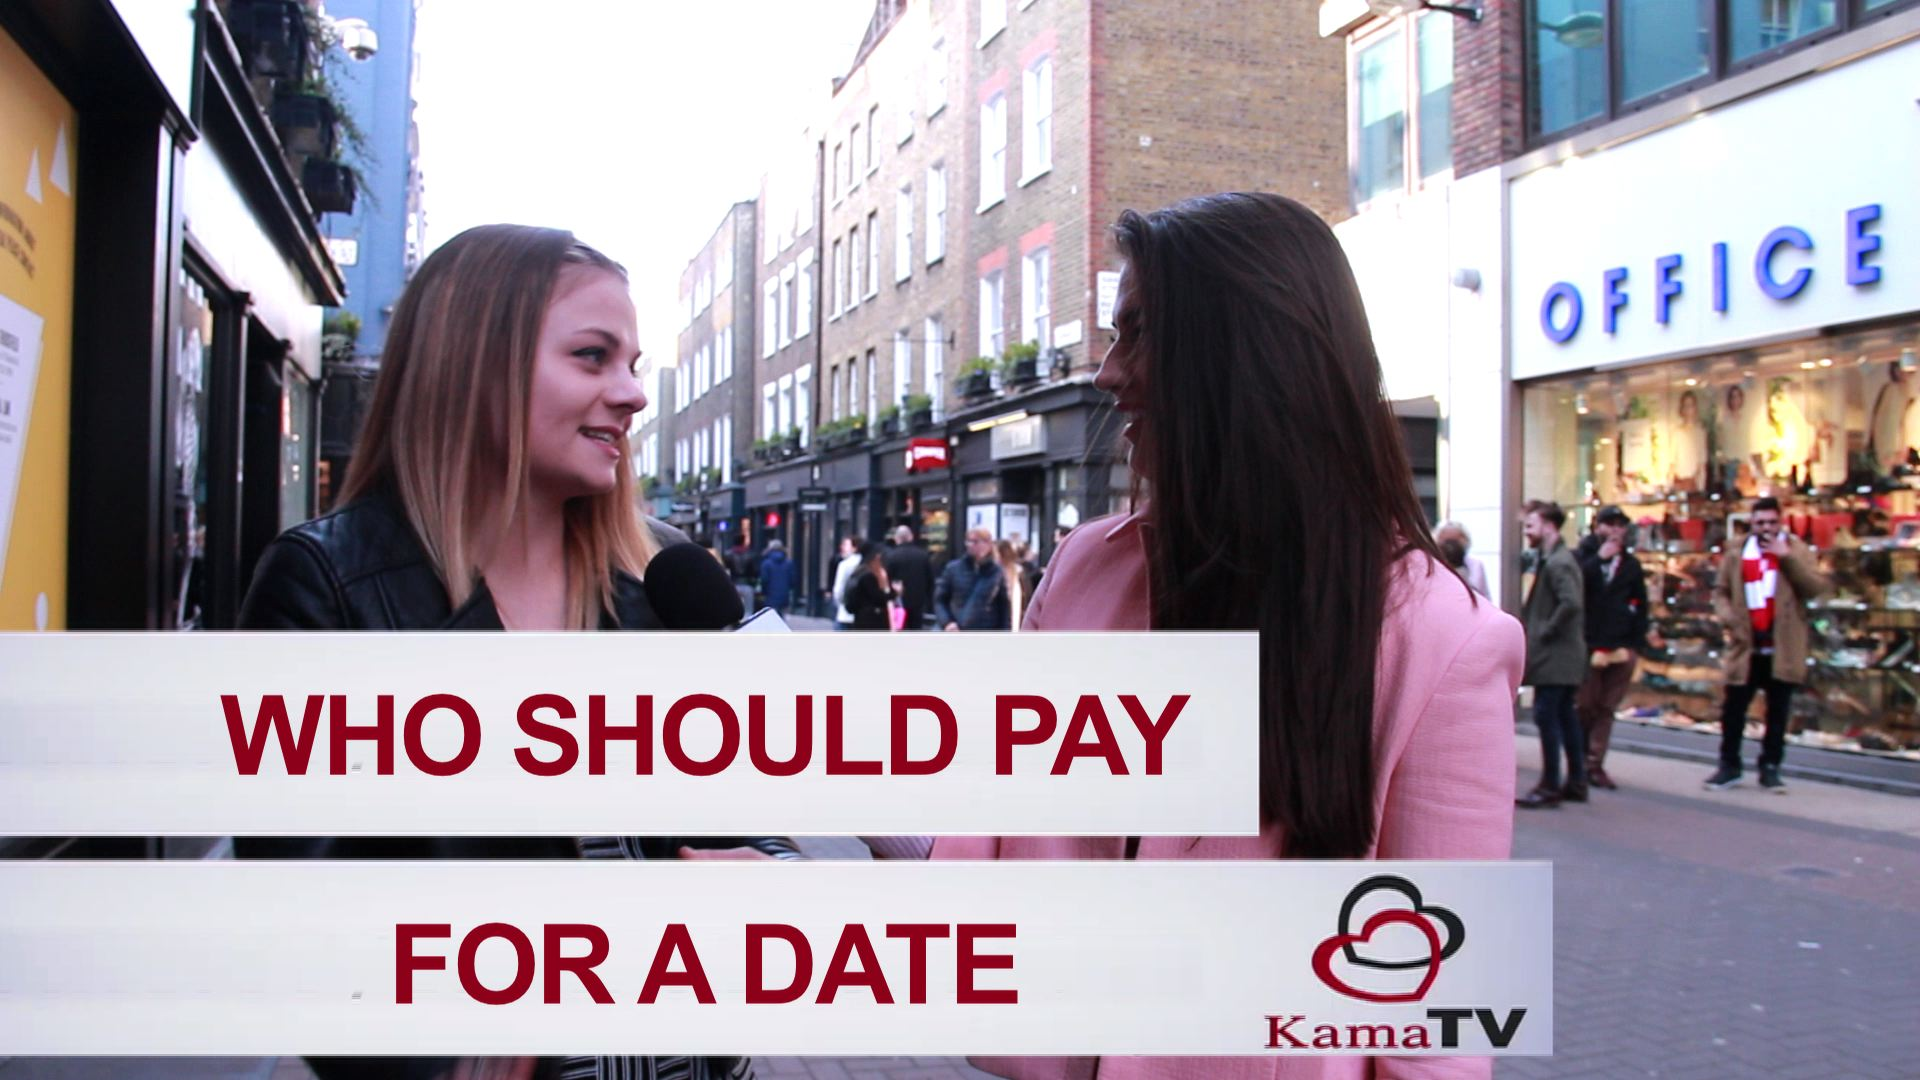 who should pay for a date